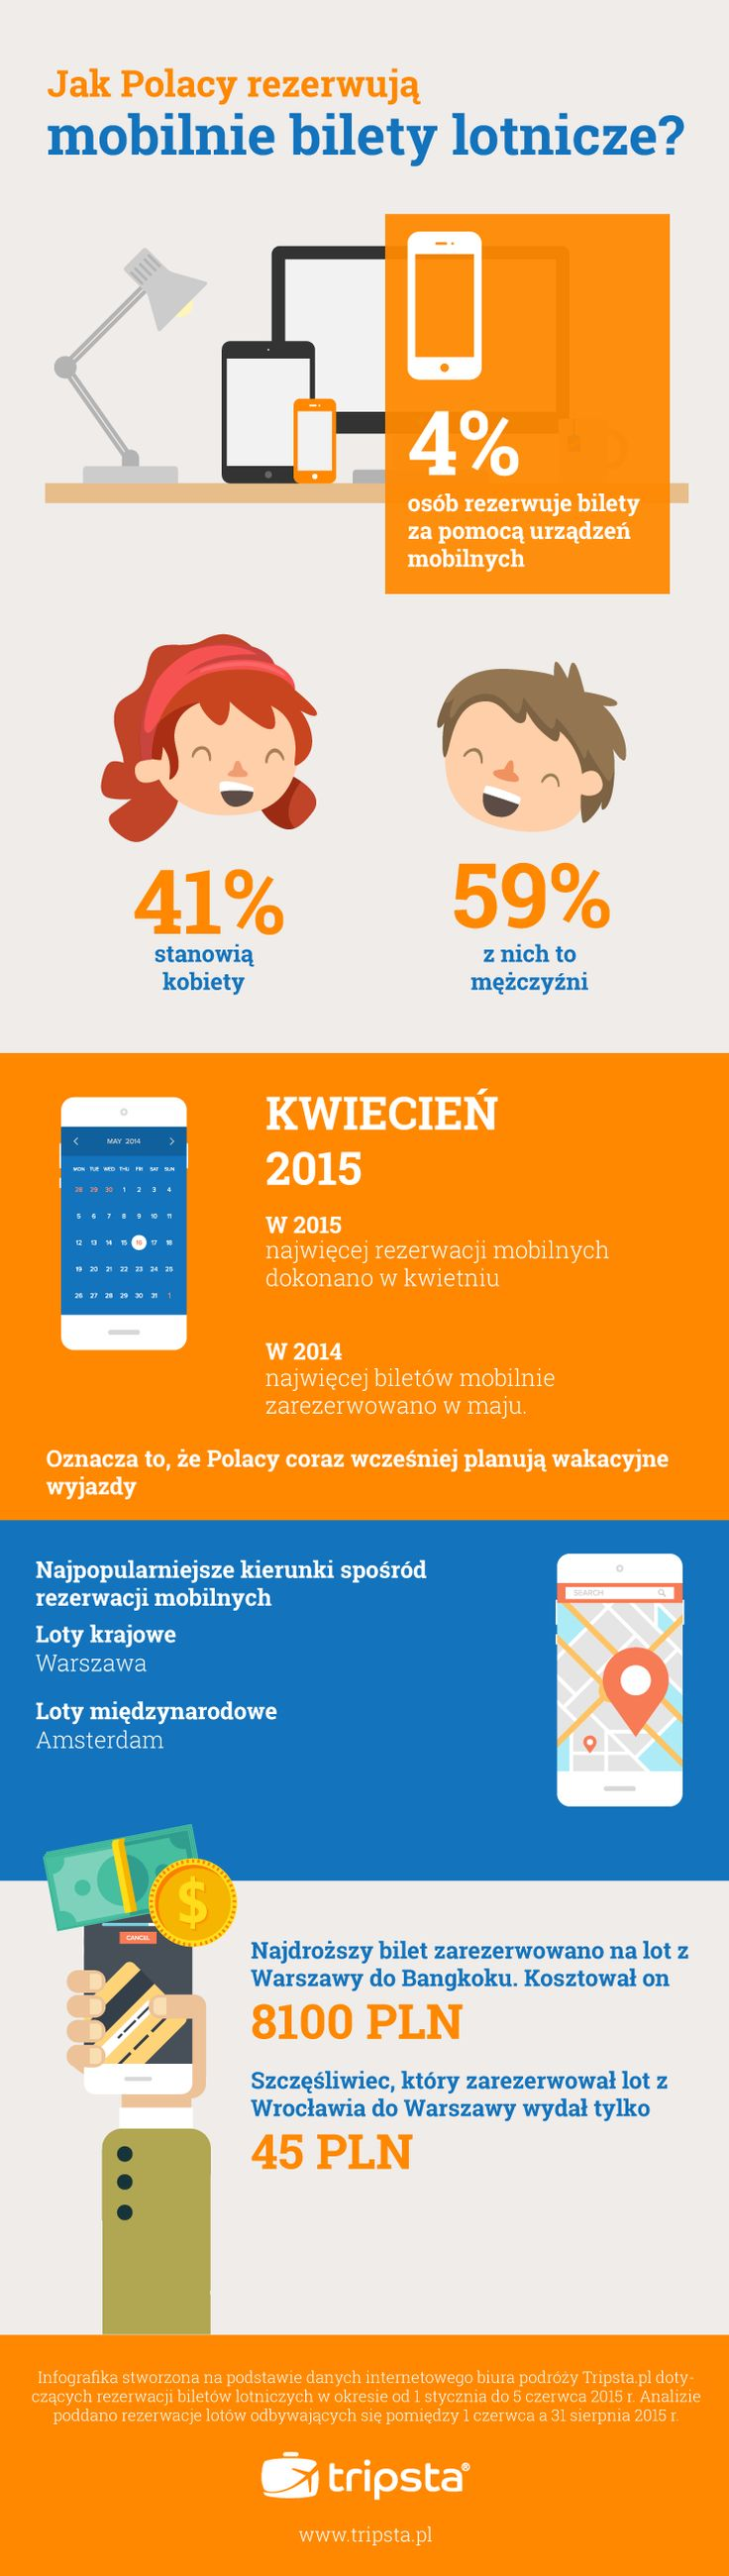 Mobile Trends in Poland #tripsta #infographic